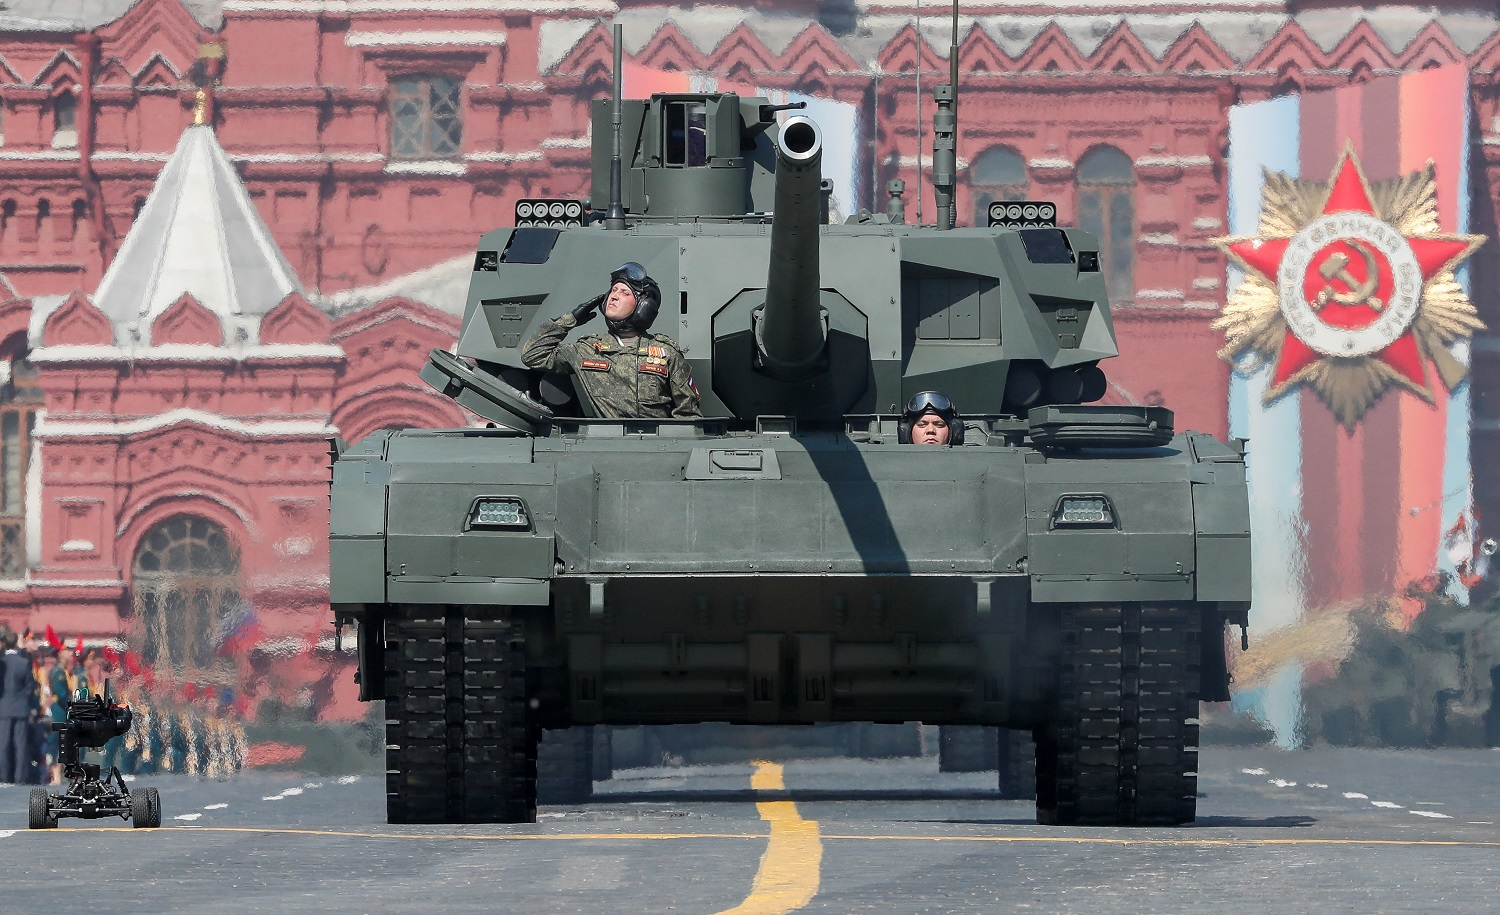 nationalinterest.org: Russian Military Looks to Establish Six Military Bases in Africa